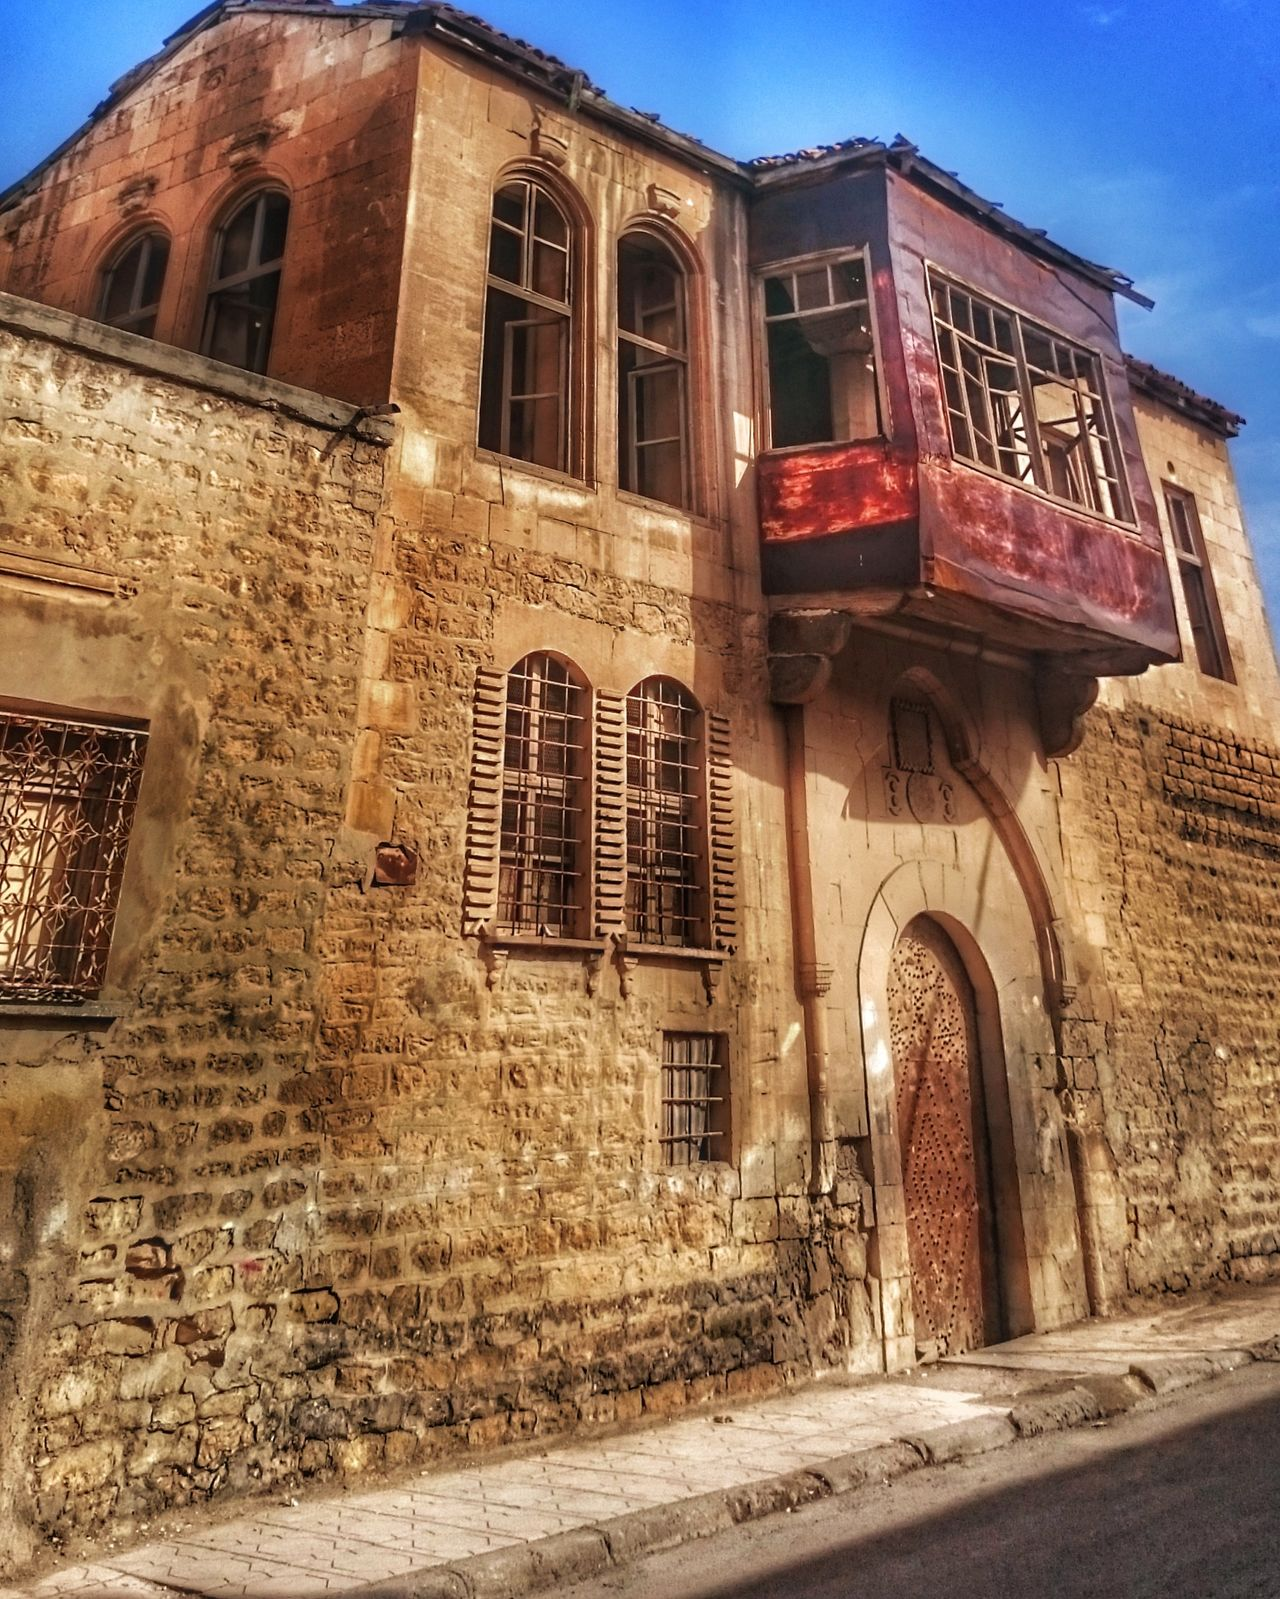 Architecture Building Exterior Built Structure No People Sky Outdoors Low Angle View Clock Day Hakandirik Turkey Old Buildings City Life City Travel Destinations Architecture Ottoman Life Kilis Old Architecture Oldhouse Hdr_Collection EyeEm Best Shots EyeEmTurkey Eskiev Historical Building